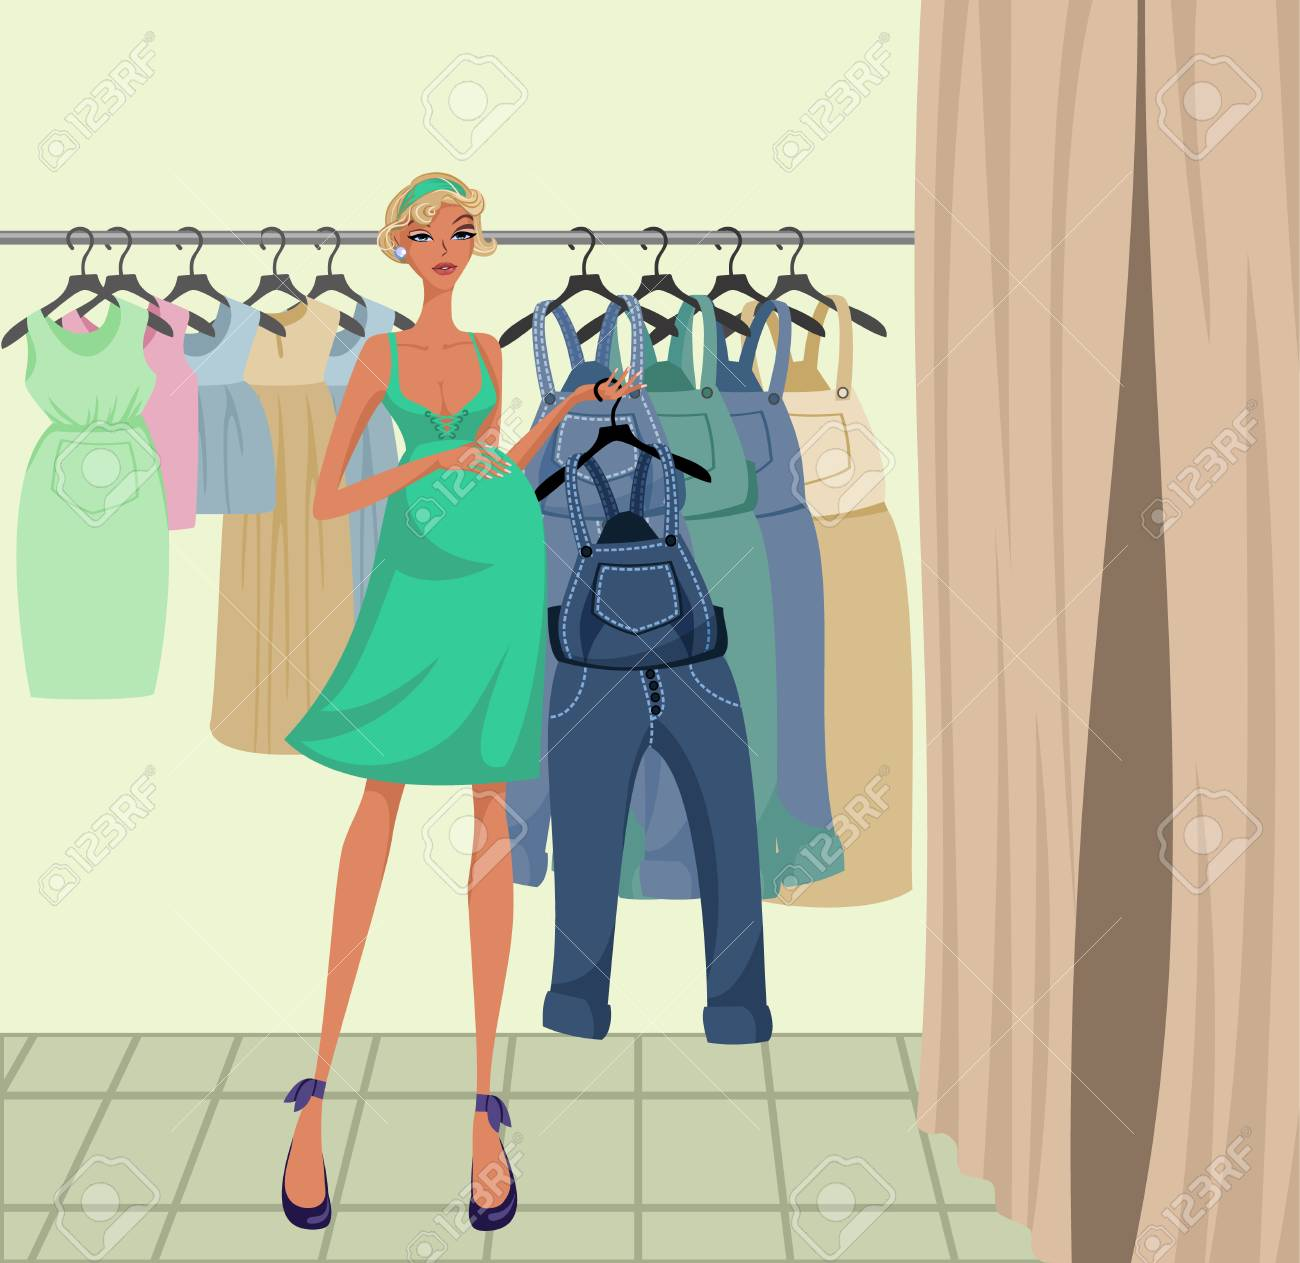 Vector illustration of a pregnant girl trying on clothes - 88634920